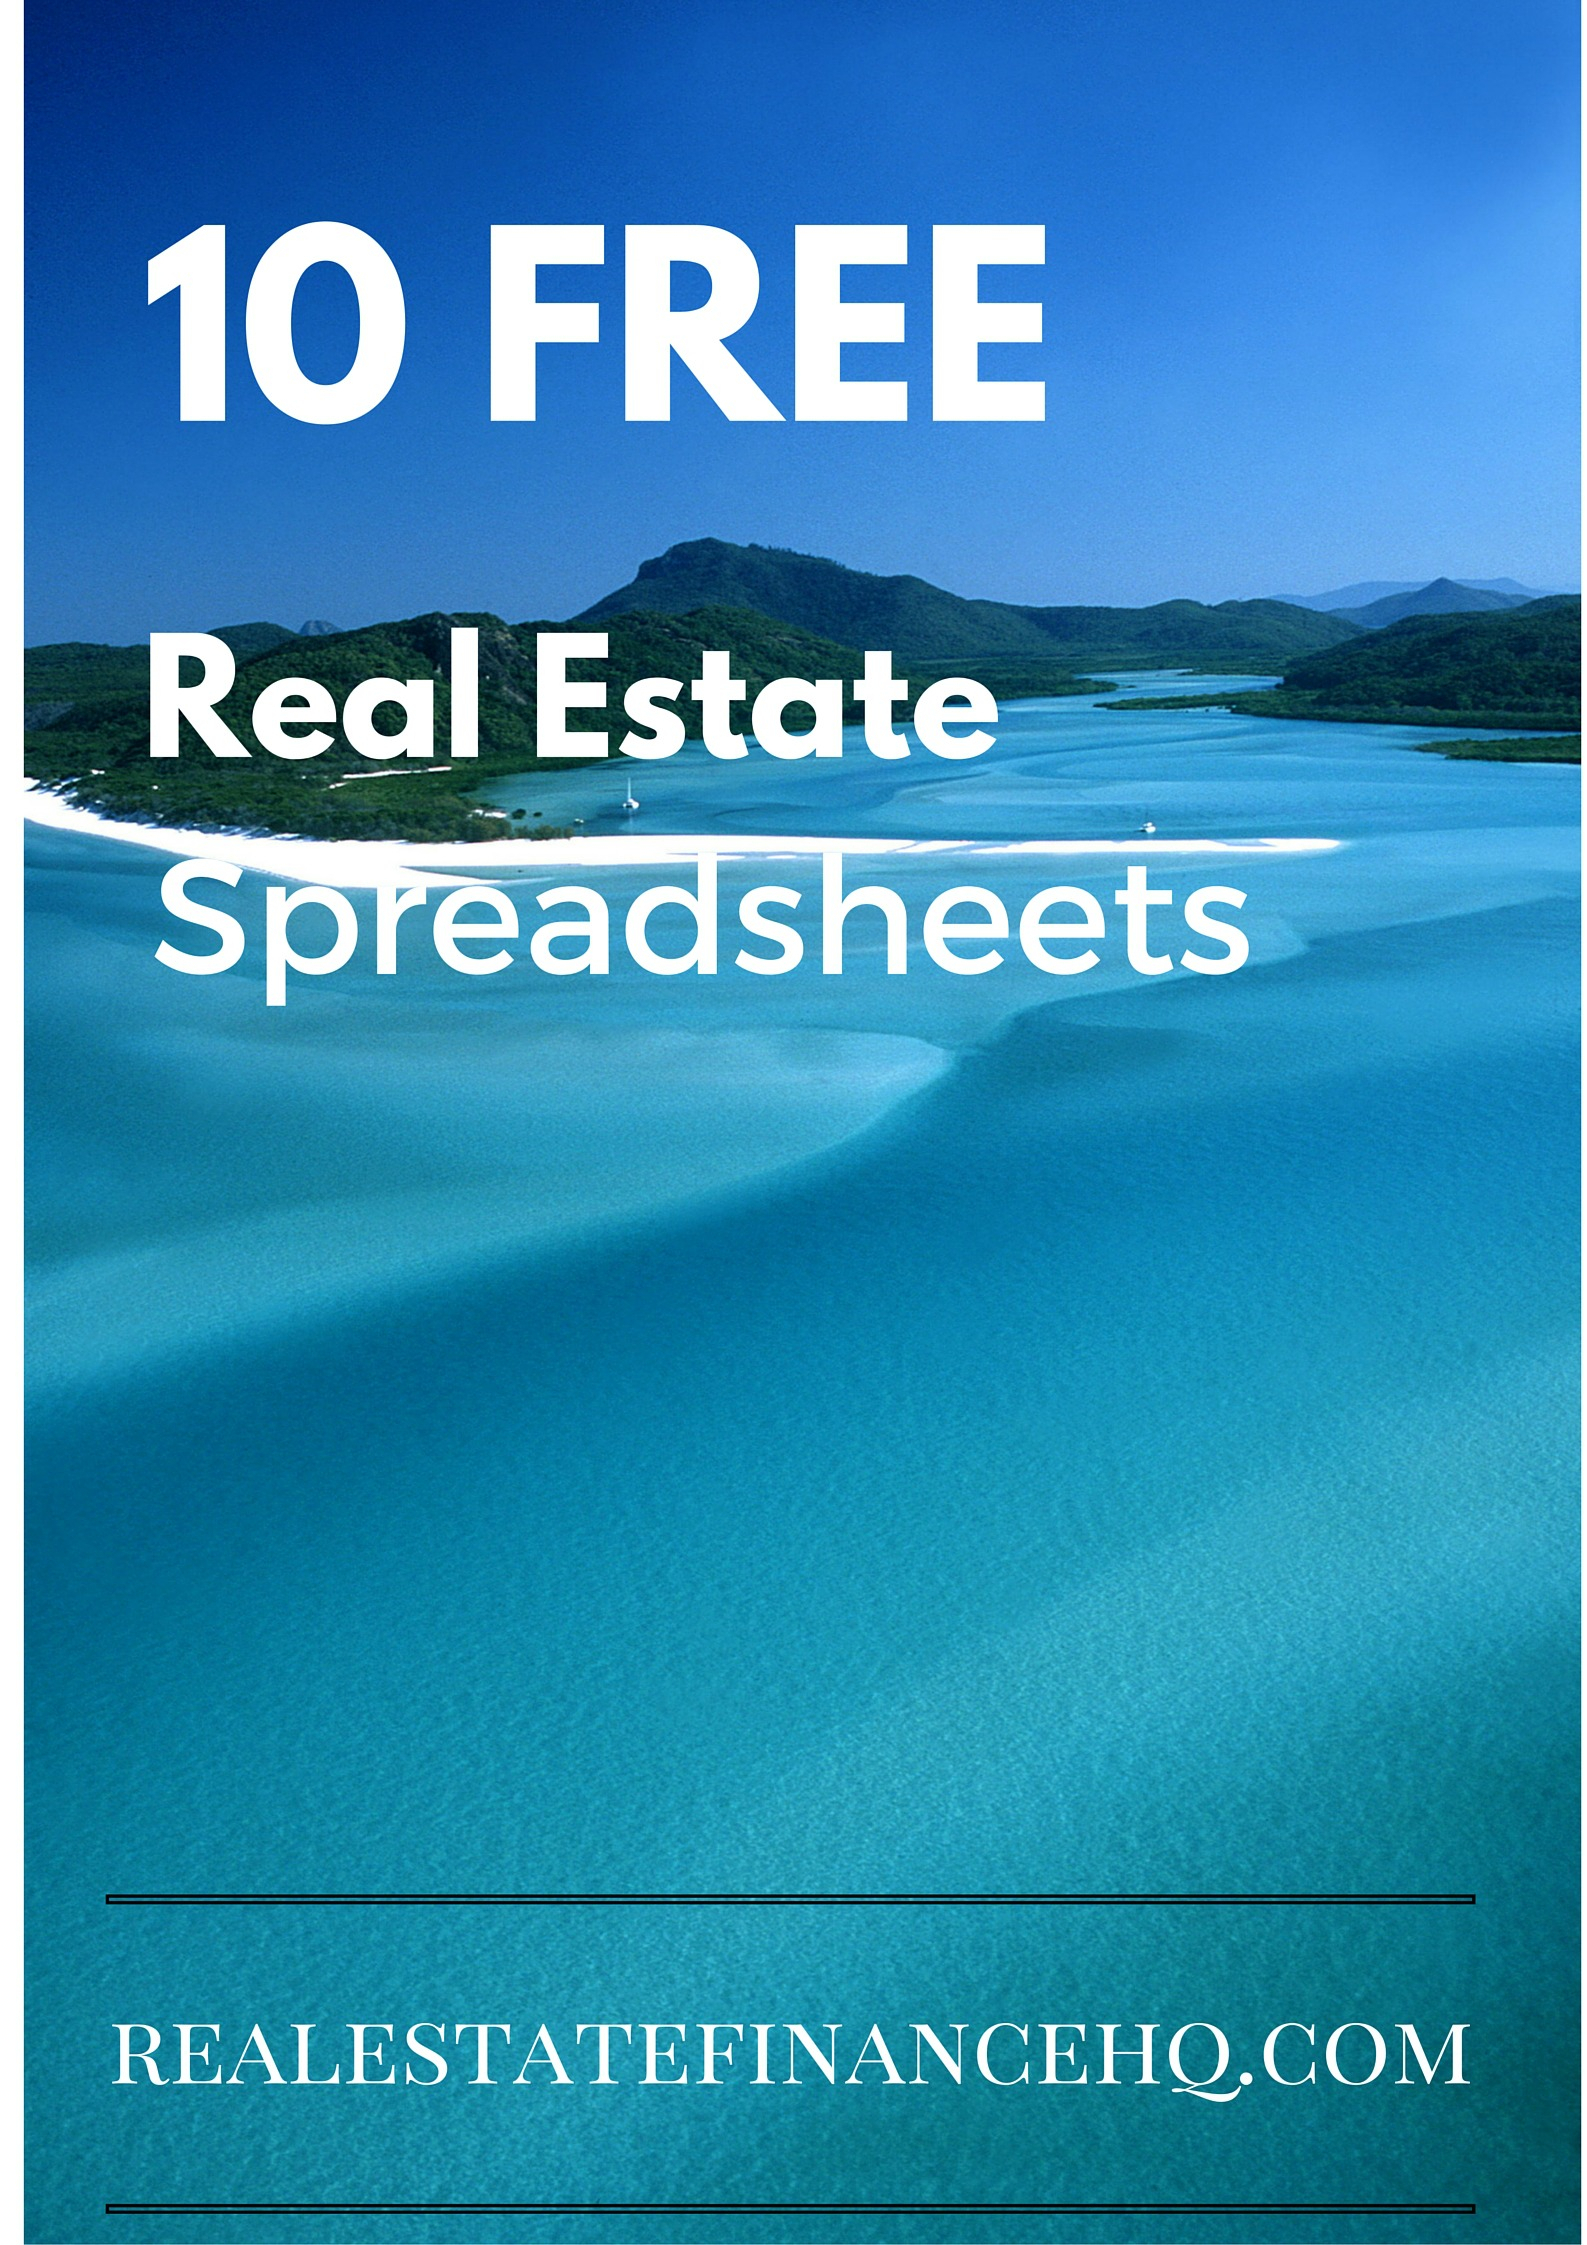 Real Estate Cash Flow Analysis Spreadsheet Regarding 10 Free Real Estate Spreadsheets  Real Estate Finance